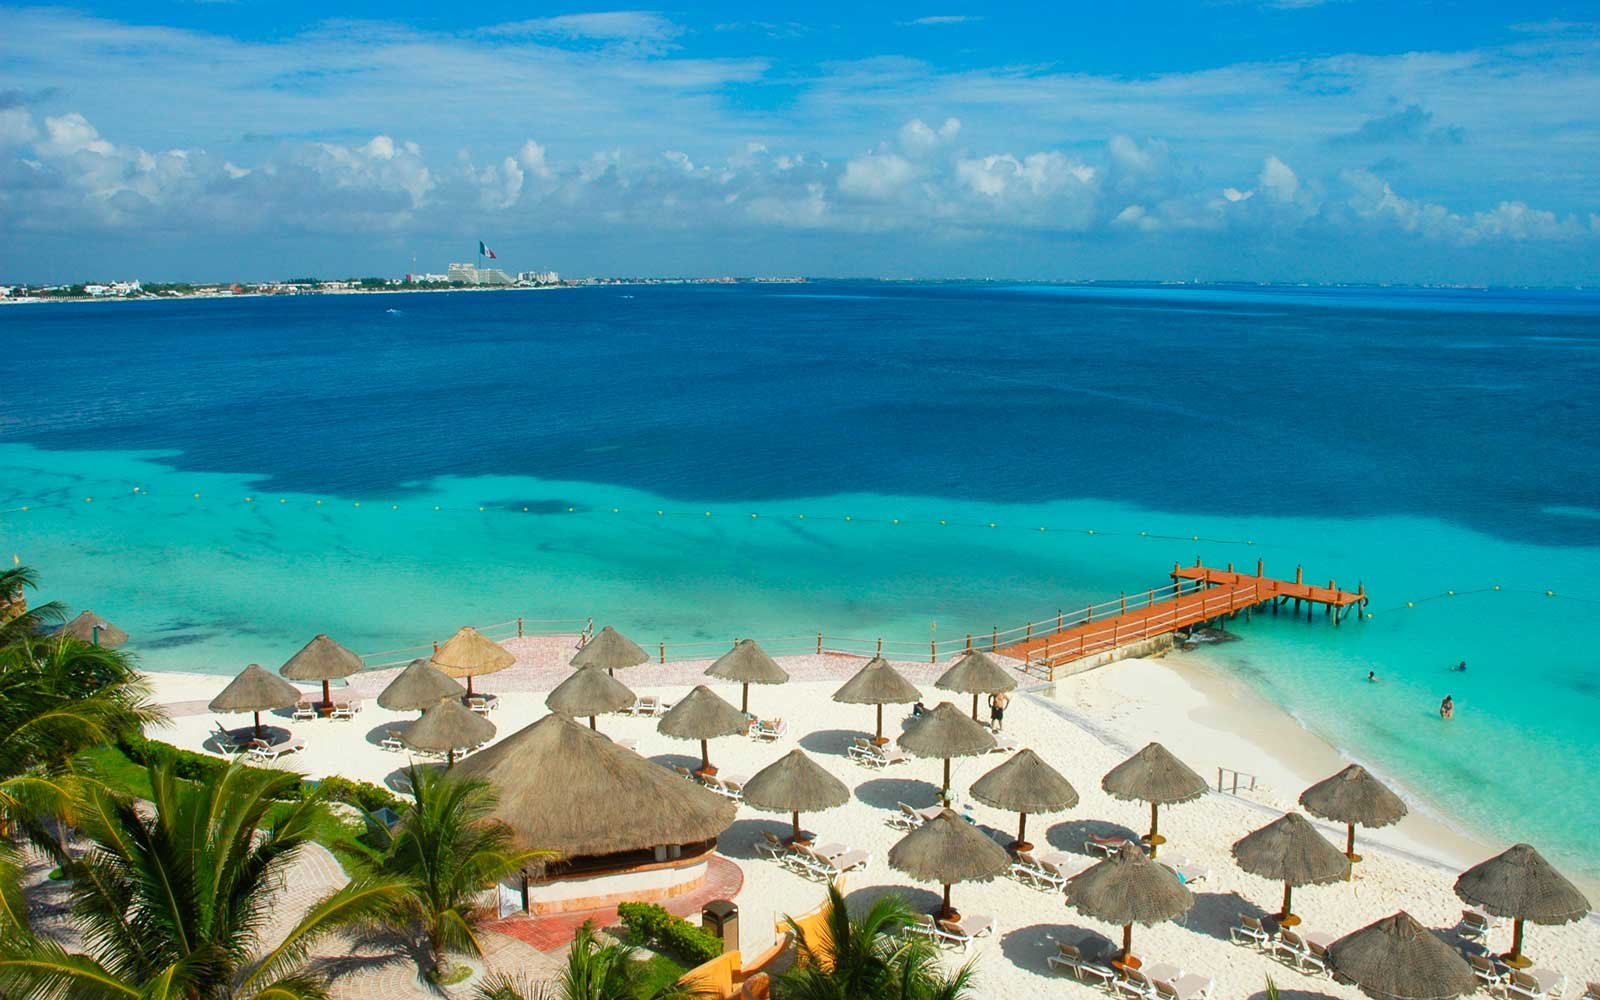 Beach chairs an umbrellas in Cancun, Mexico